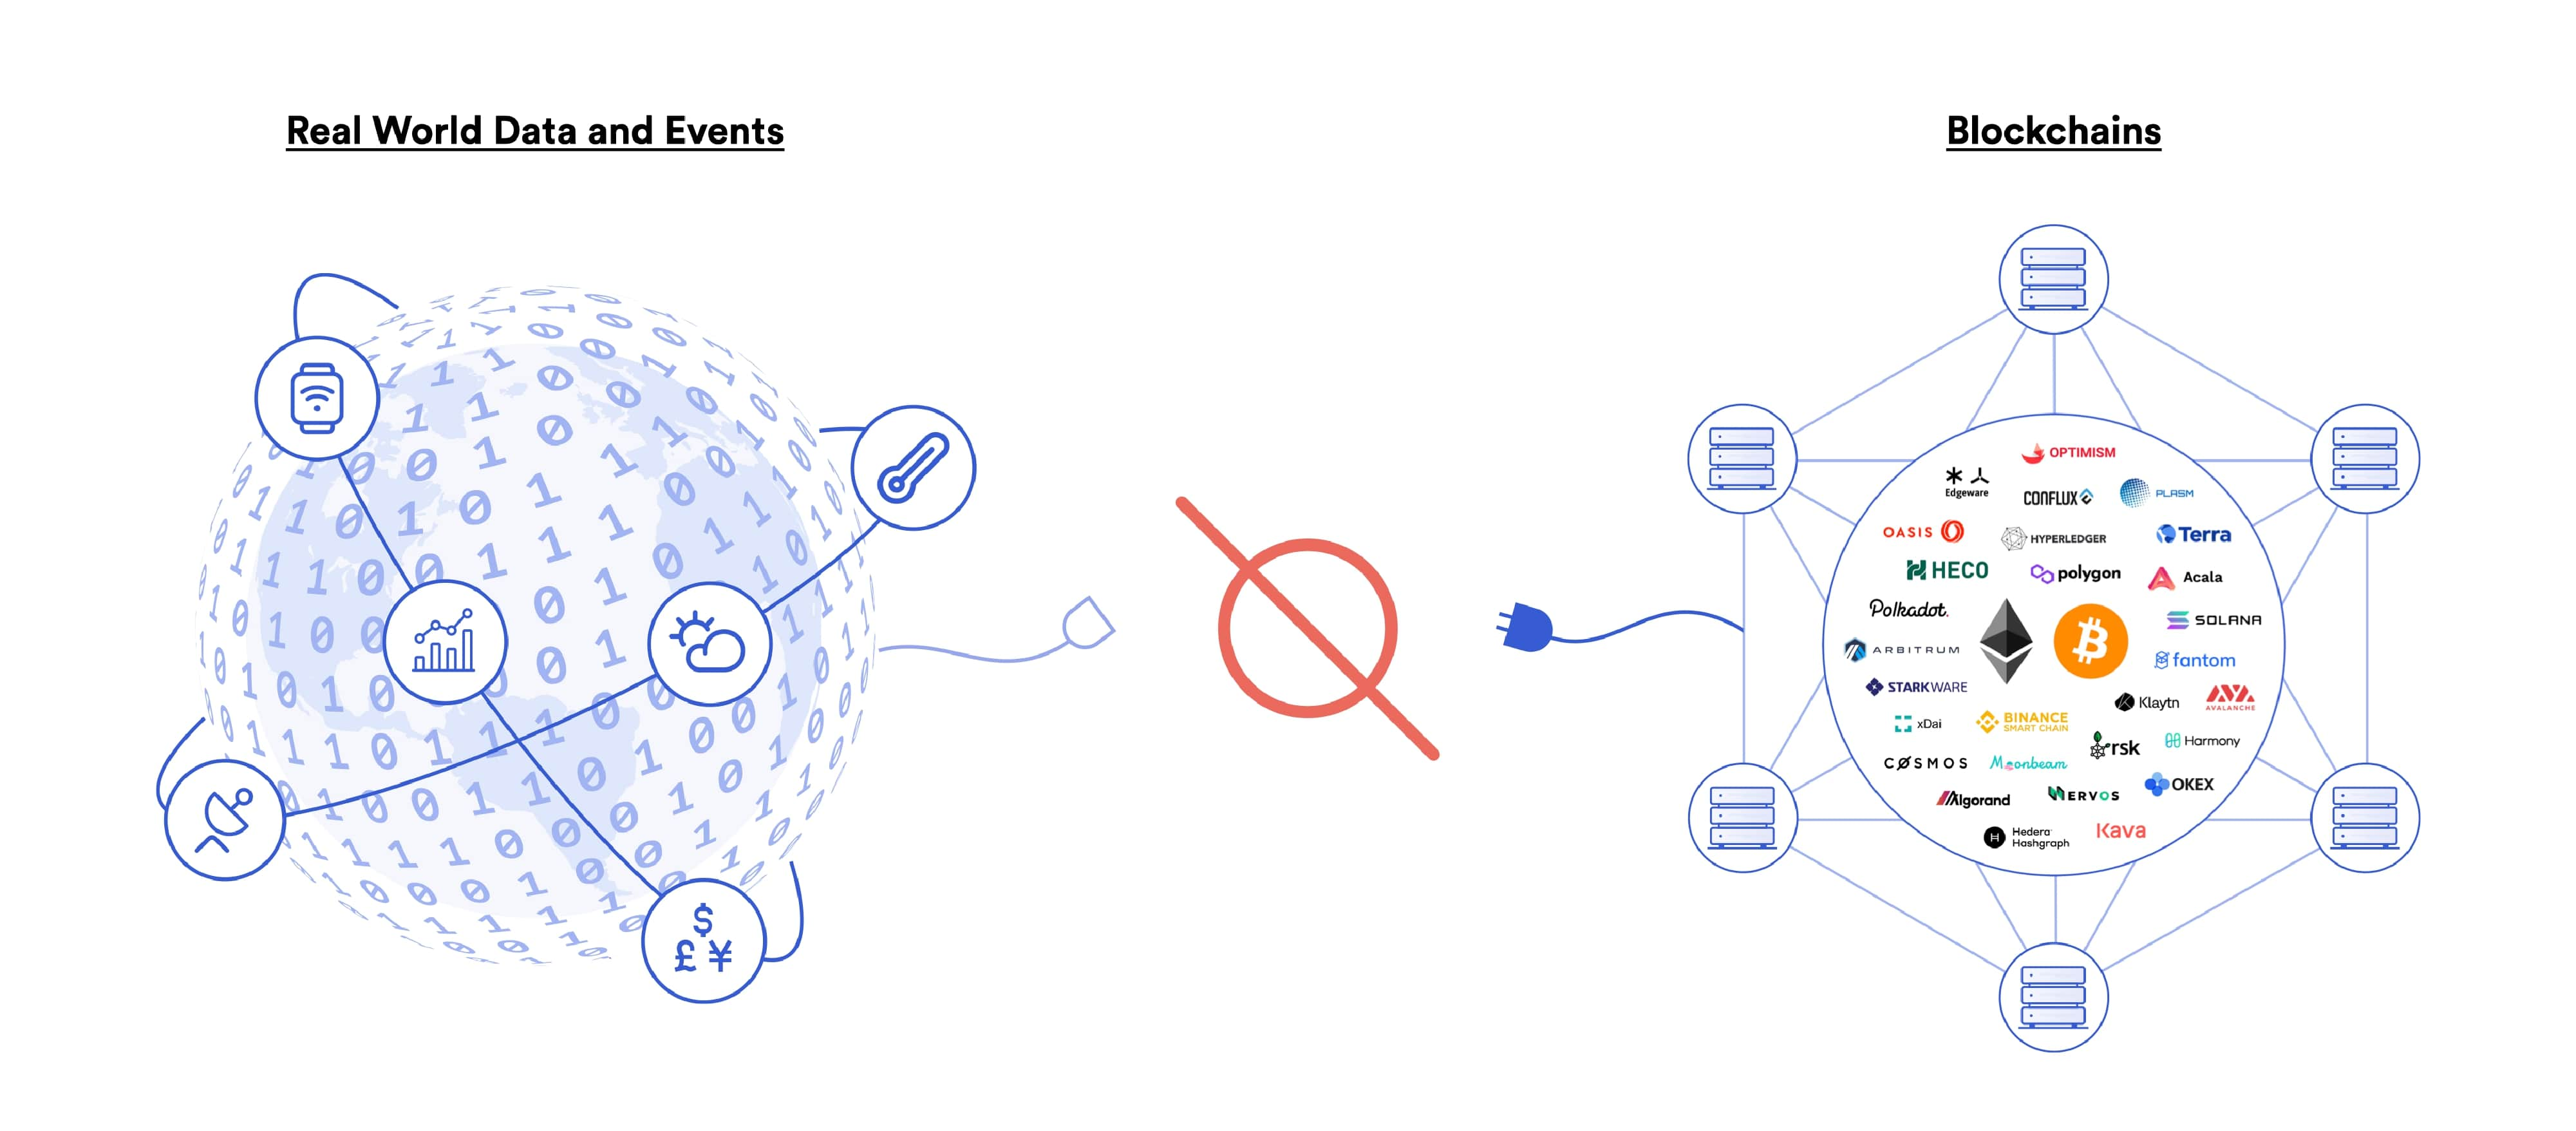 Centralized oracles